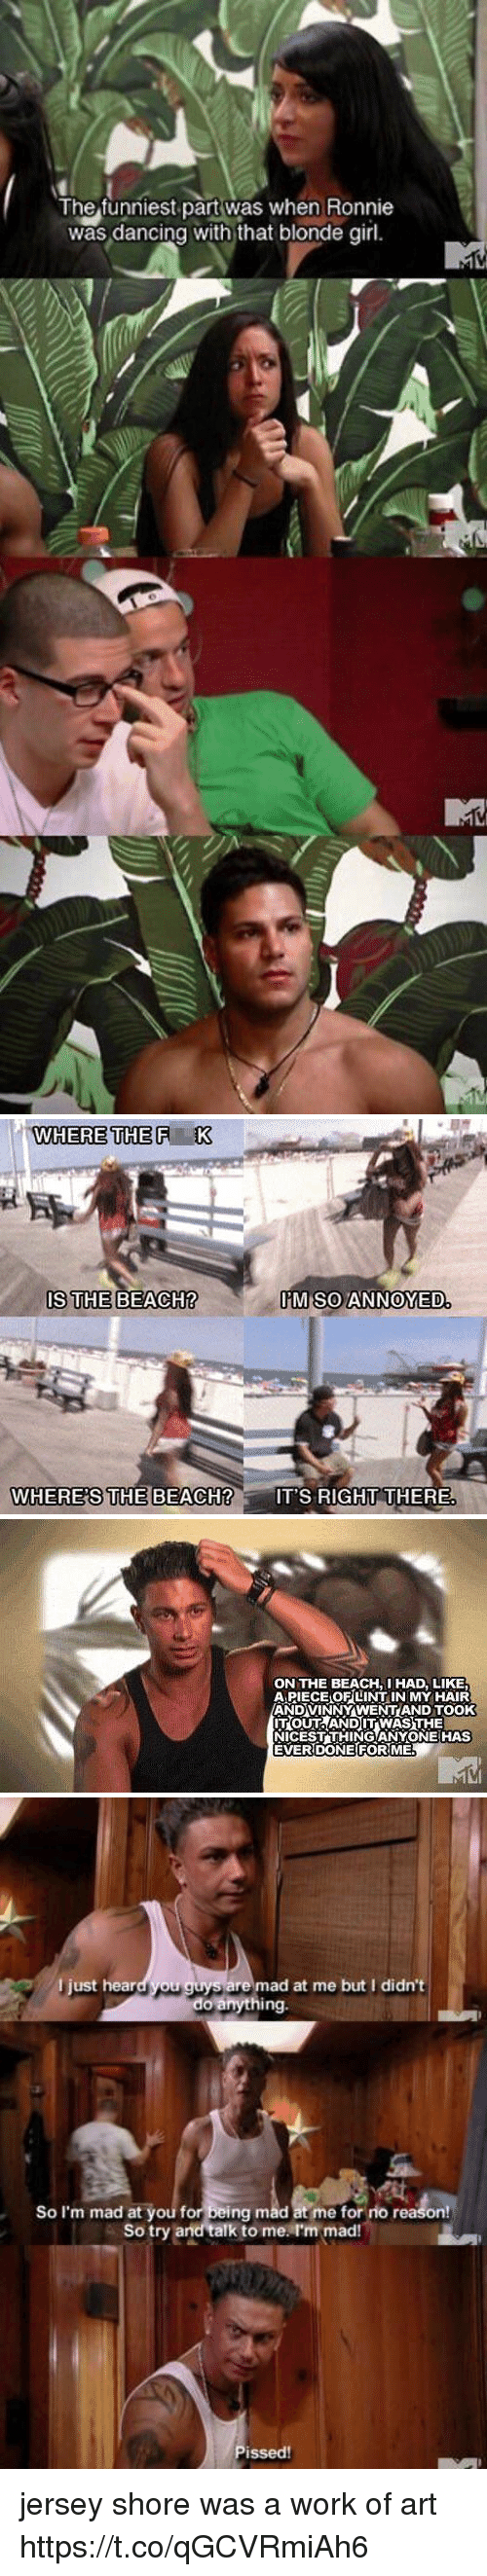 Dancing, Work, and Beach: The funniest part was when Ronnie  was dancing with that blonde girl   WHERE THE F K  IS THE BEACH?  M SOANNOYED  WHERE'S  CH?IT'S RIGHT THERE   ON THE BEACH, HAD, LIKE  APIECEO팃LINT IN MY HAIR  ANDVINNÝ WENTAND TOOK  ITOUTAANDITWAS THE  NICESTTHINGANYONE HAS  EVERDONE FORIME   l just heard you guys are mad at me but I didn't  do anything.  So I'm mad at you for being mad at me for rio reason!  So try and talk to me I'm mad!  issed! jersey shore was a work of art https://t.co/qGCVRmiAh6